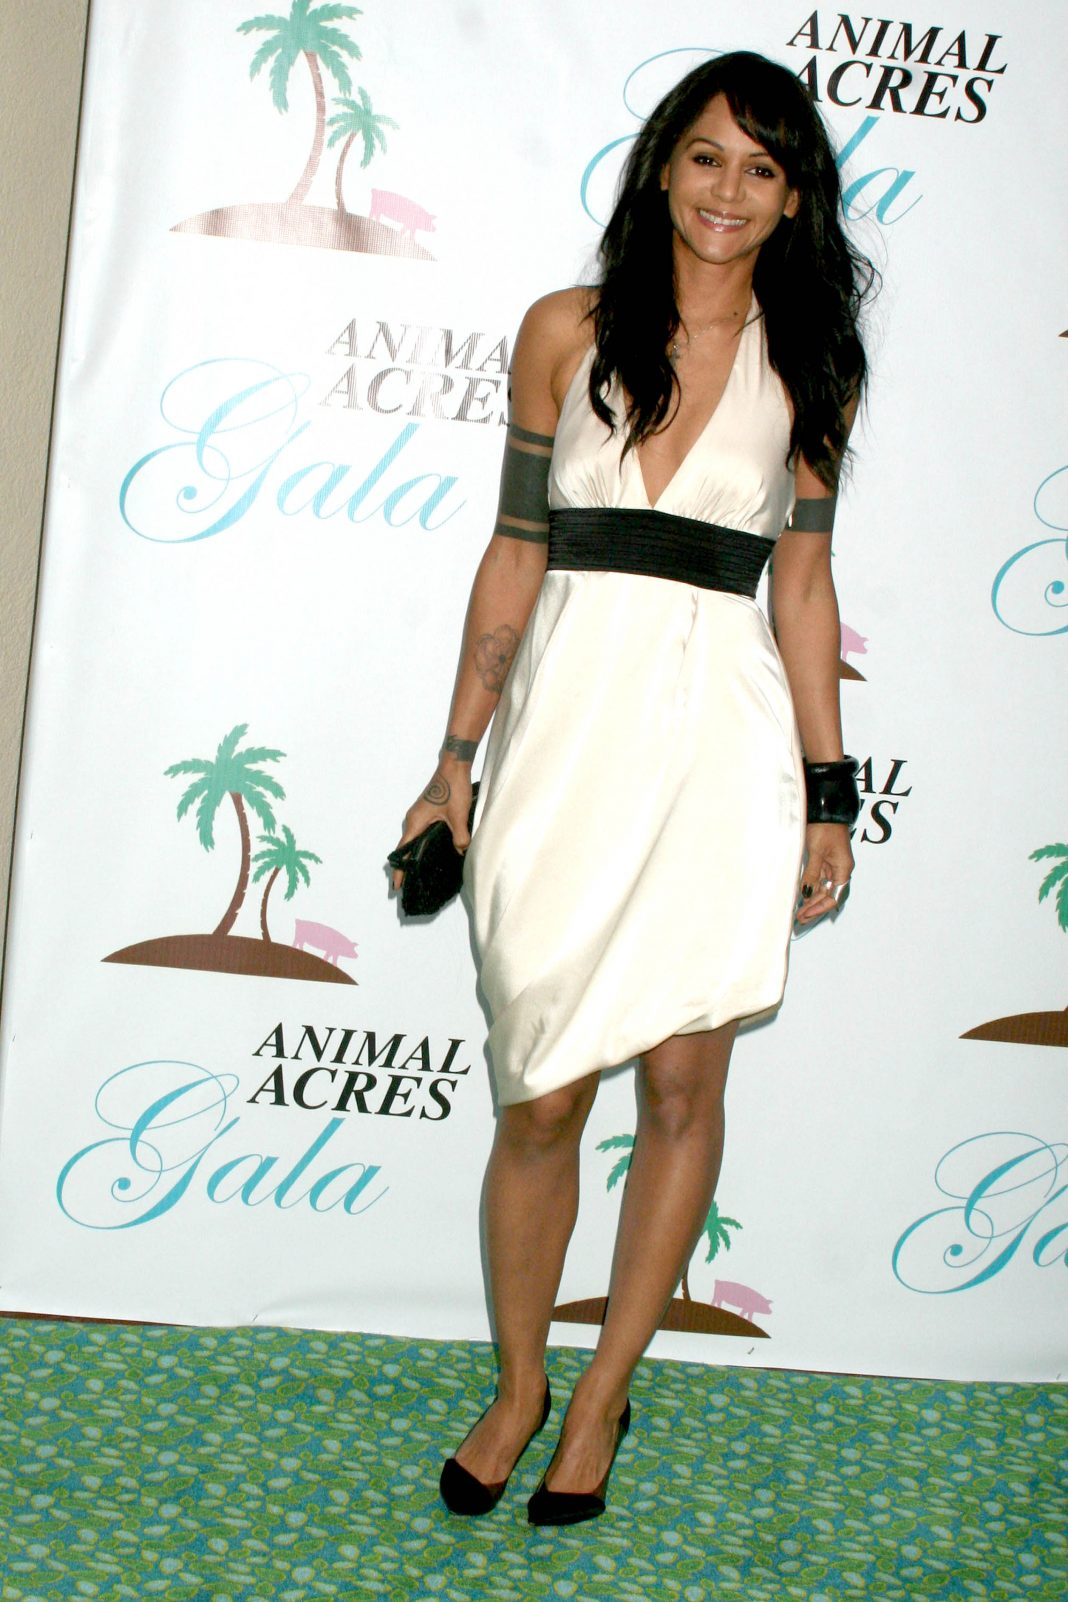 49 Persia White Nude Pictures Which Demonstrate Excellence